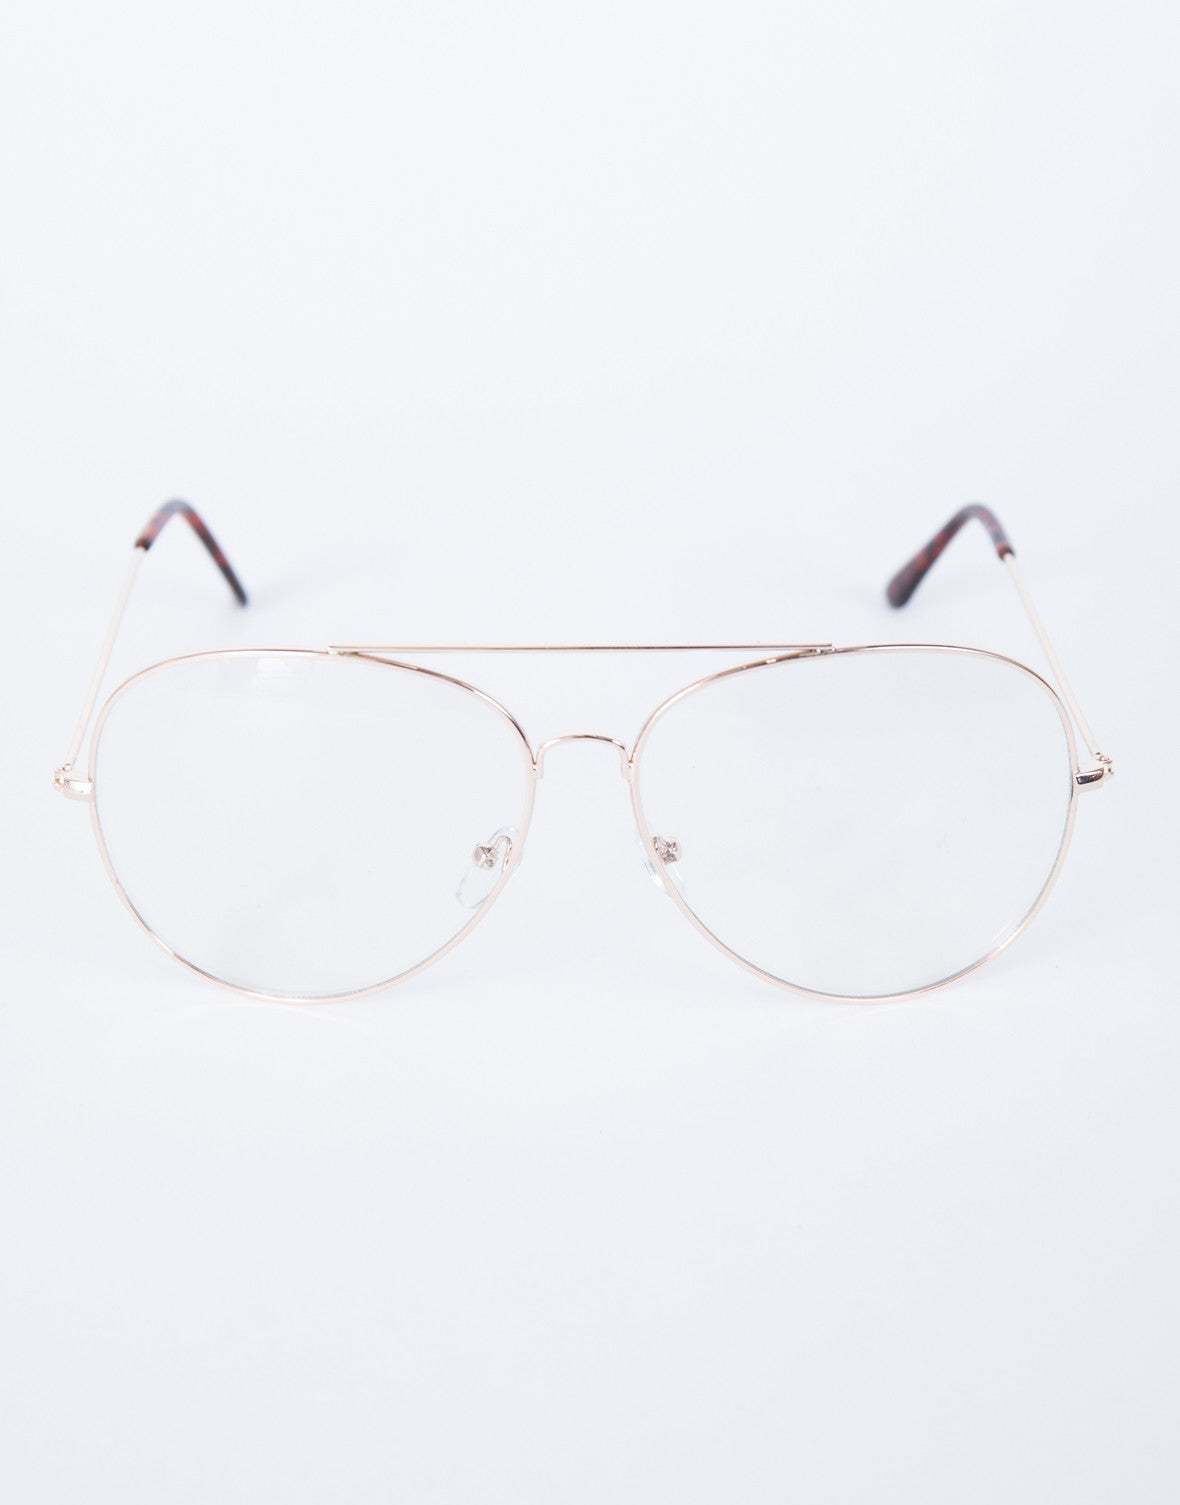 b653571942 Clearly Retro Aviators - Oversized Clear Glasses - Oversized Hippie ...